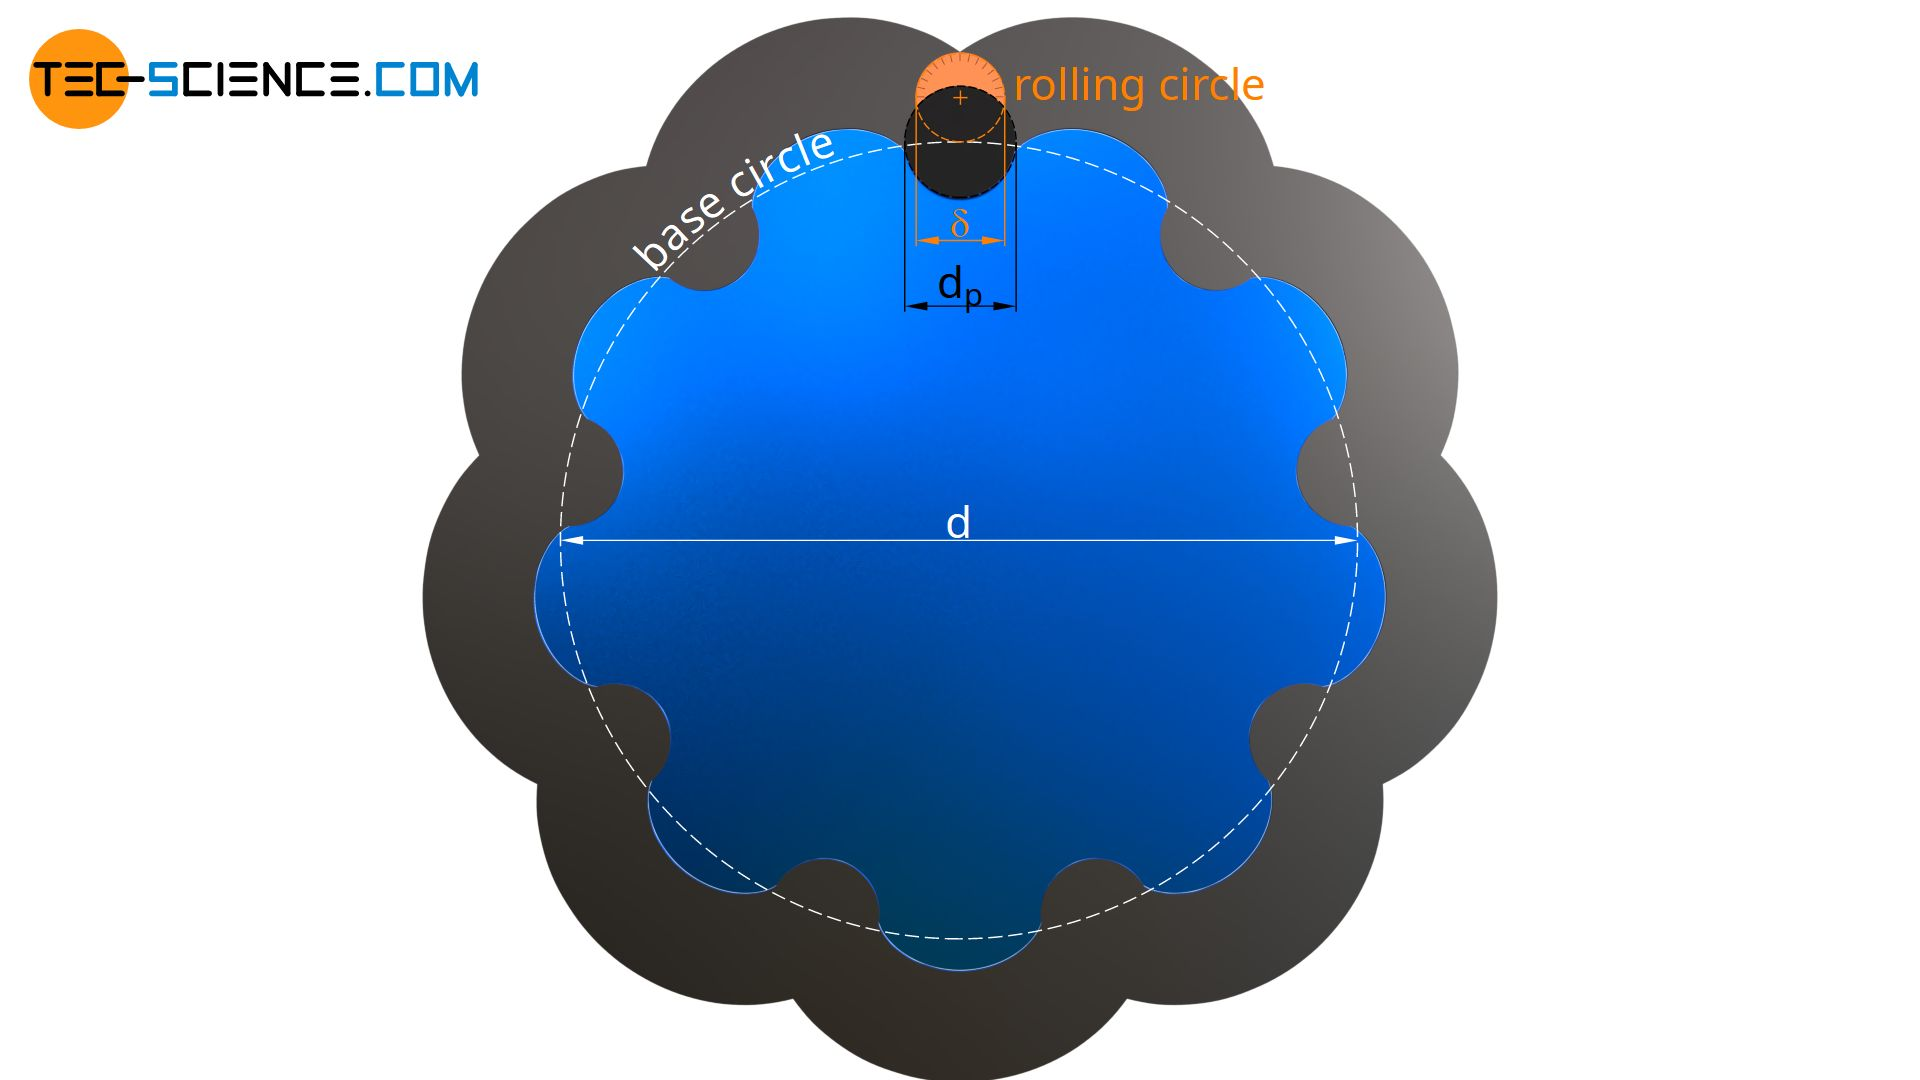 Figure: Ratio of rolling circle to base circle